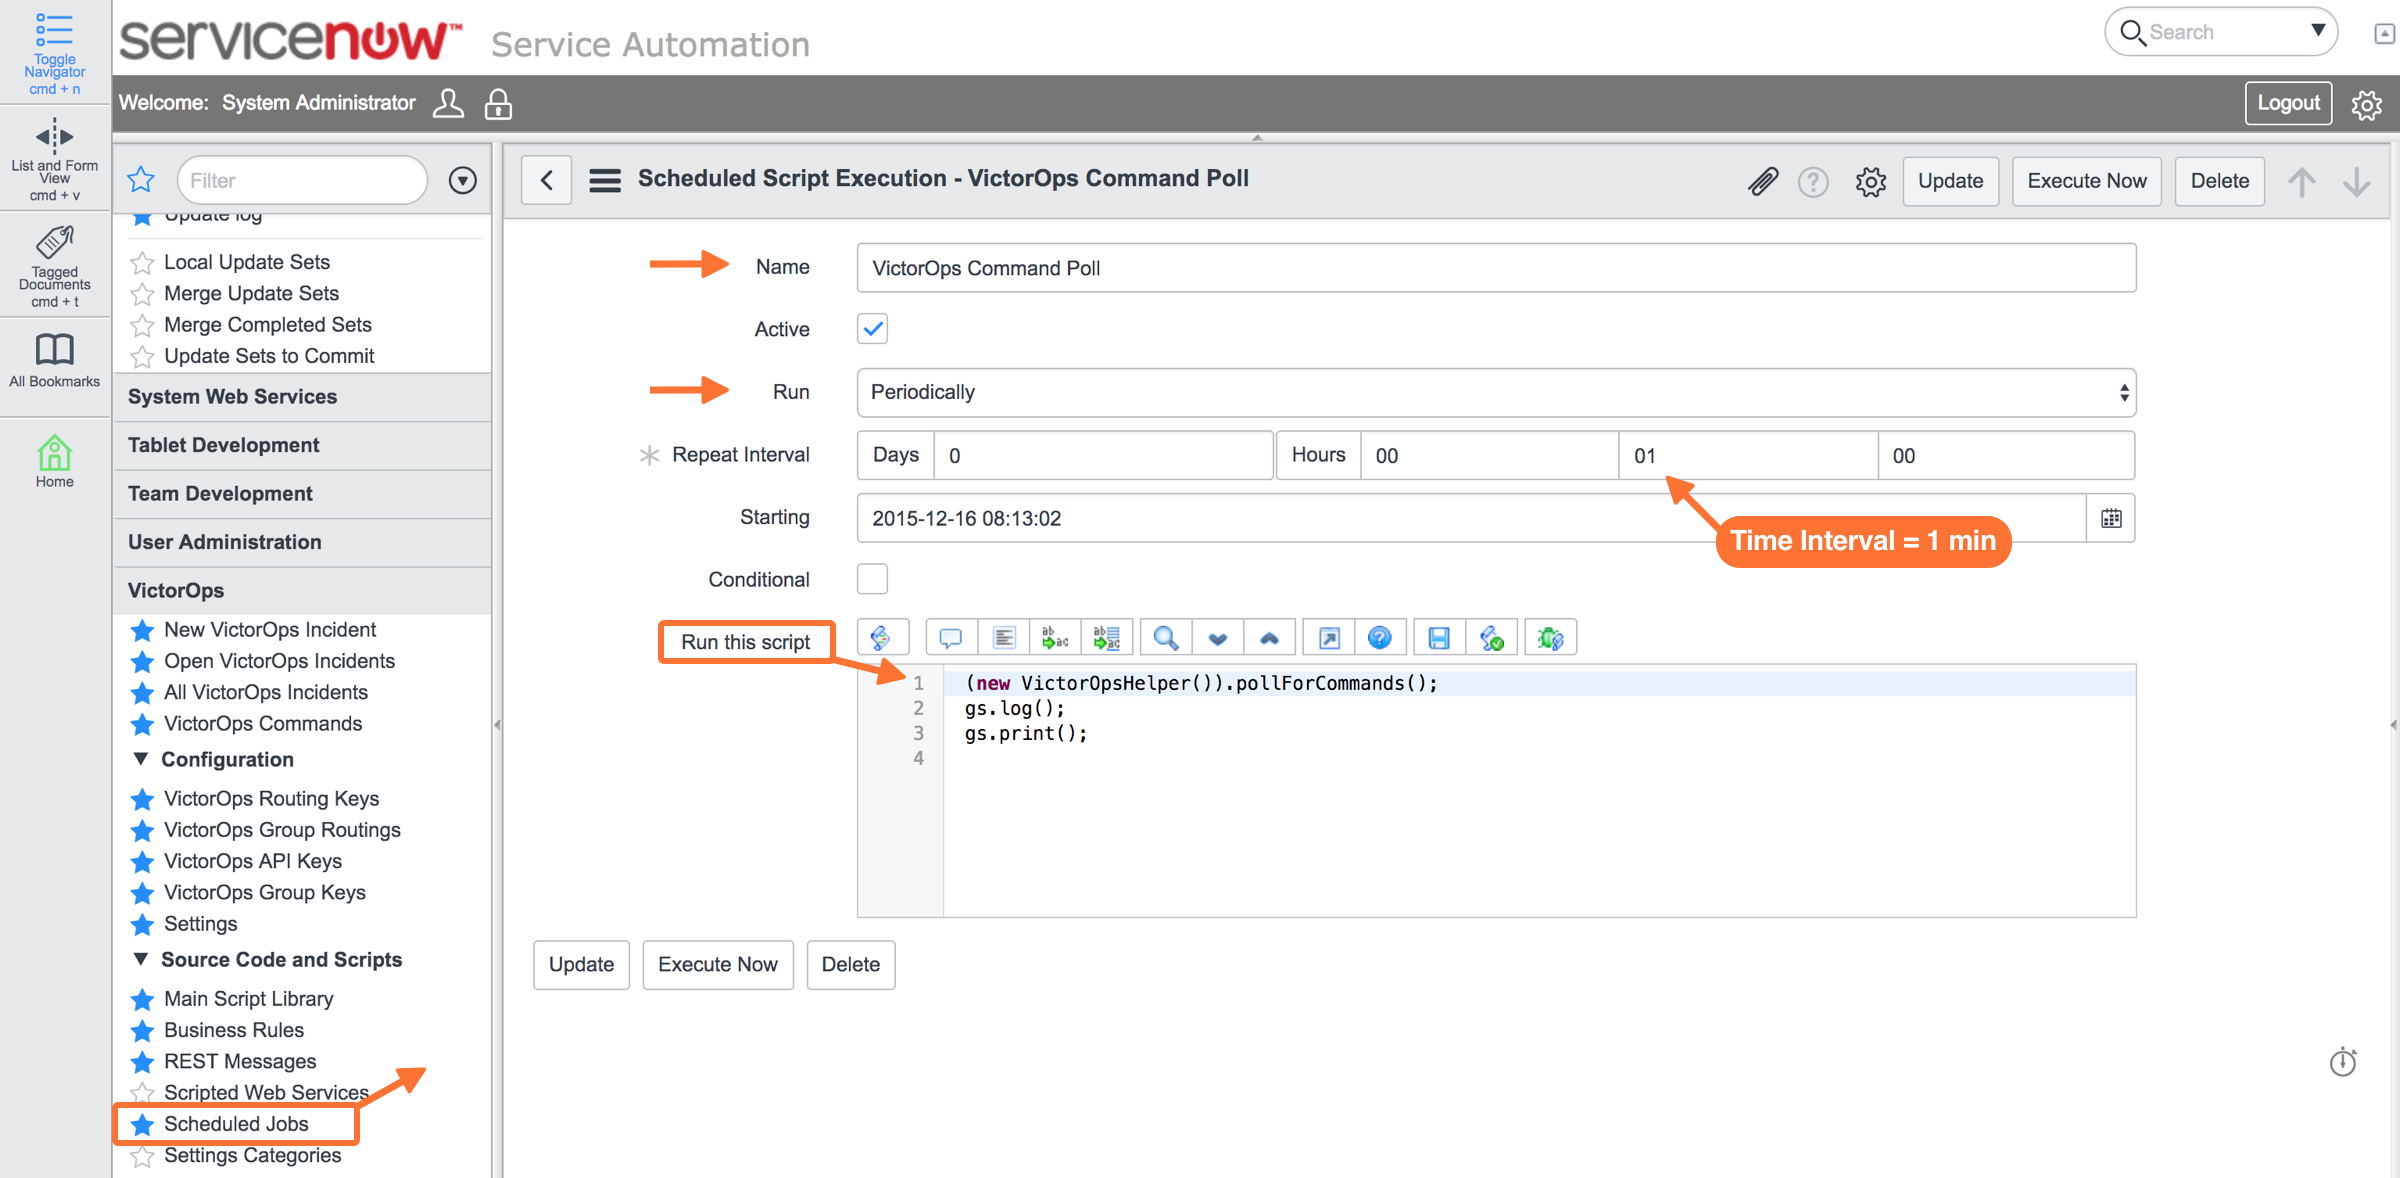 Enable Ack Back in ServiceNow